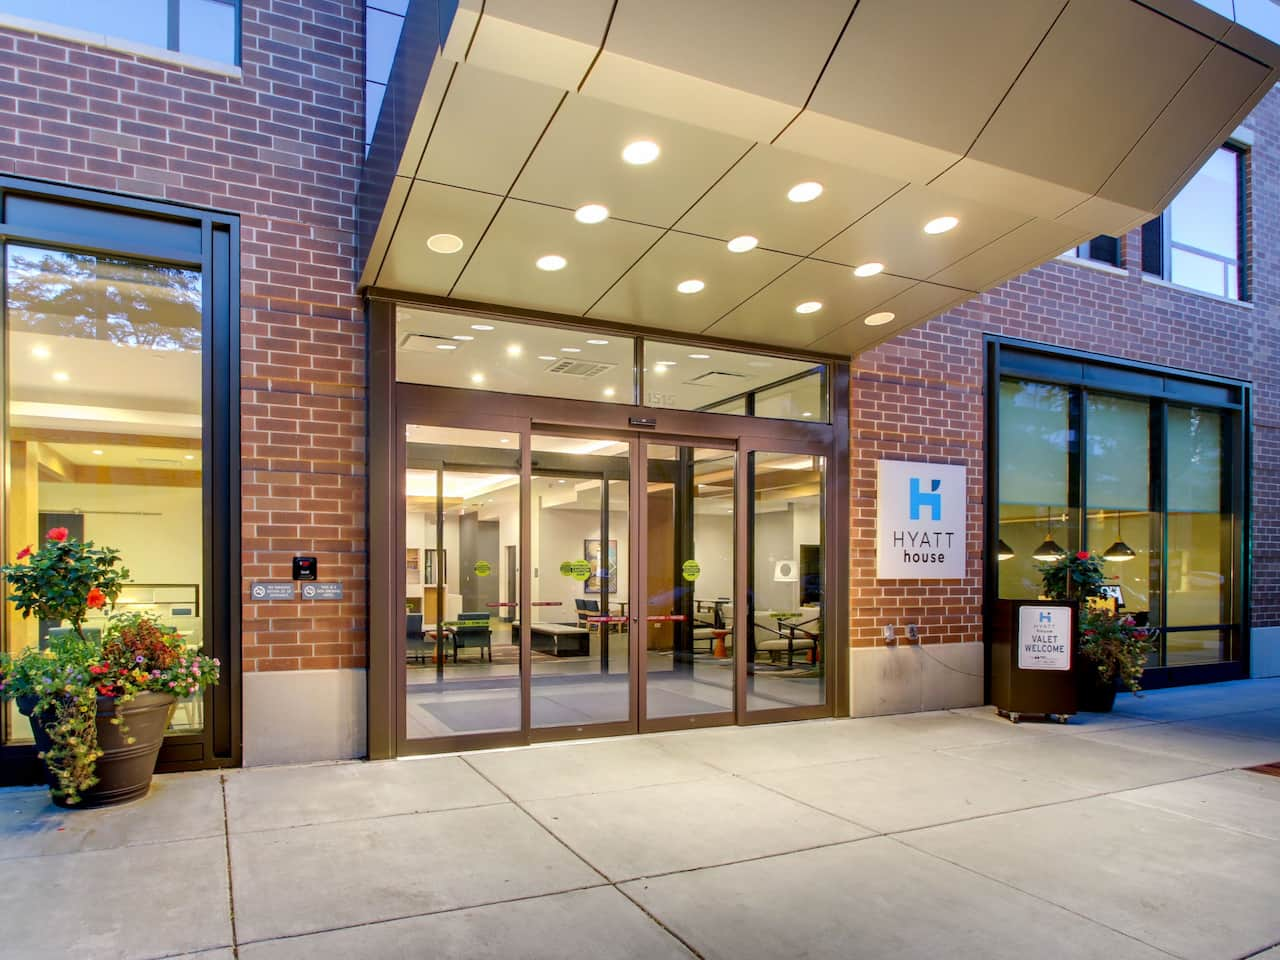 Hyatt House Entrance